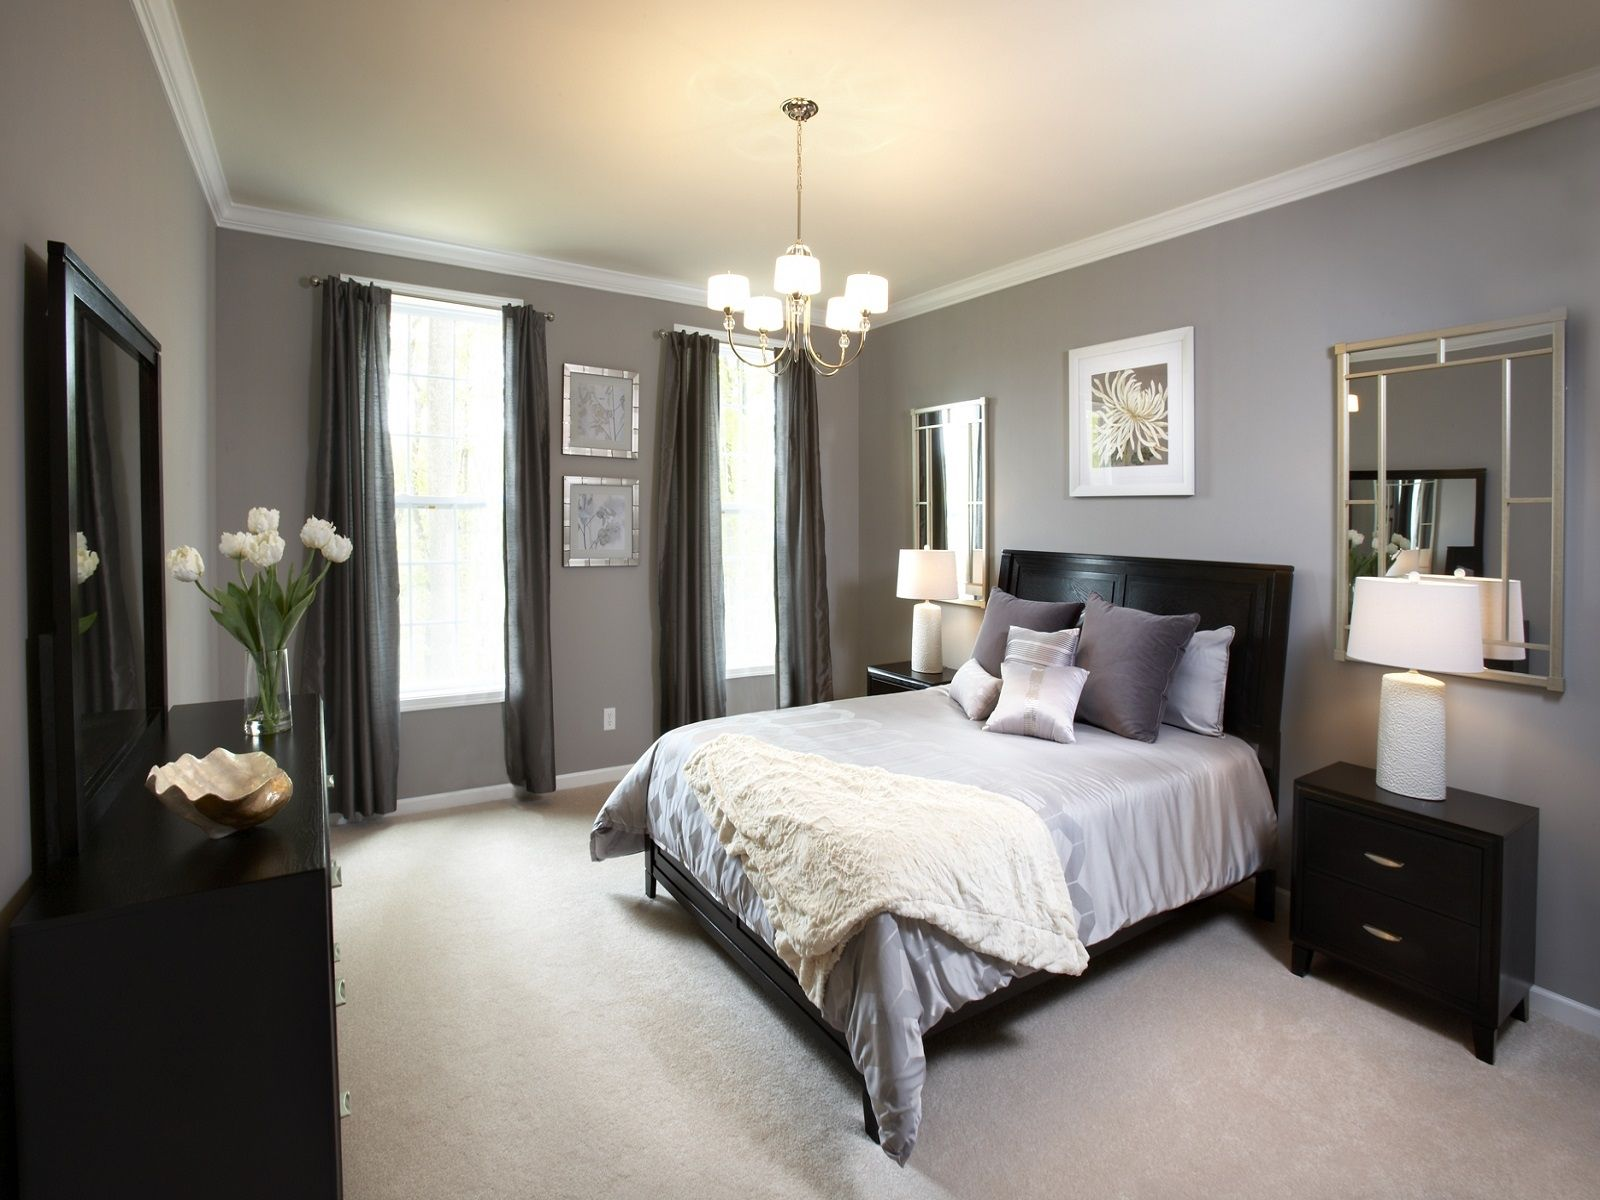 45 beautiful paint color ideas for master bedroom | bedrooms and